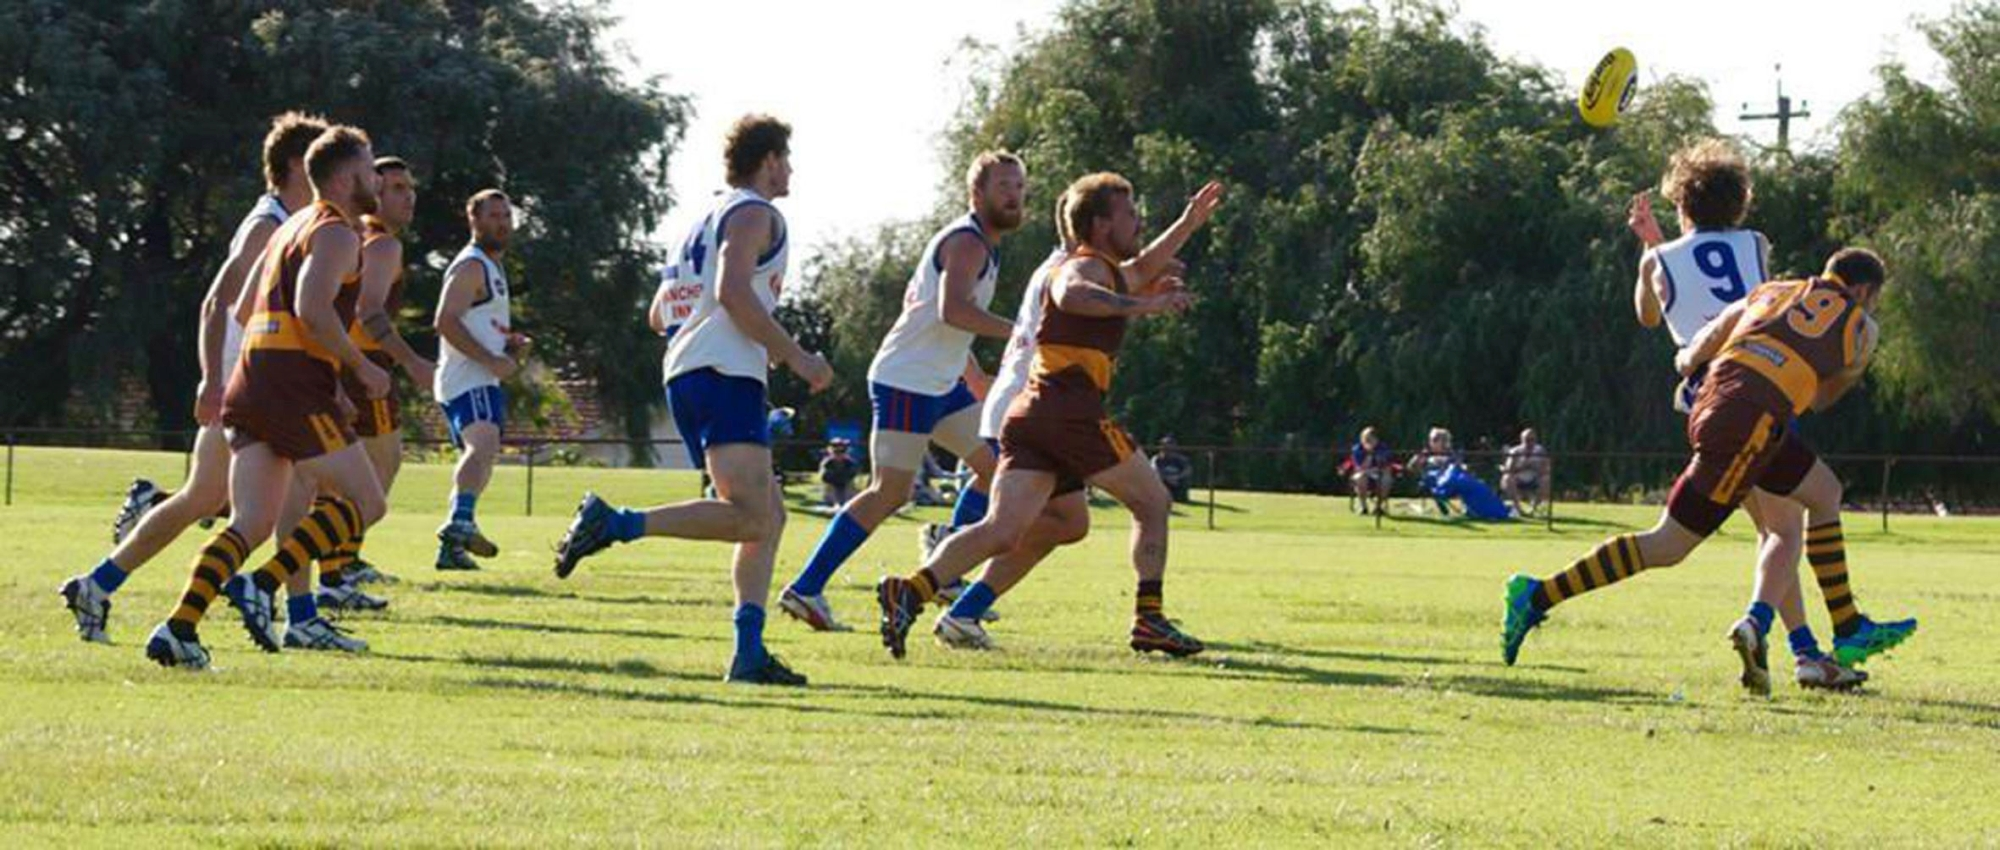 Yanchep overcame Warwick Greenwood in a close match. Picture: Yanchep Red Hawks